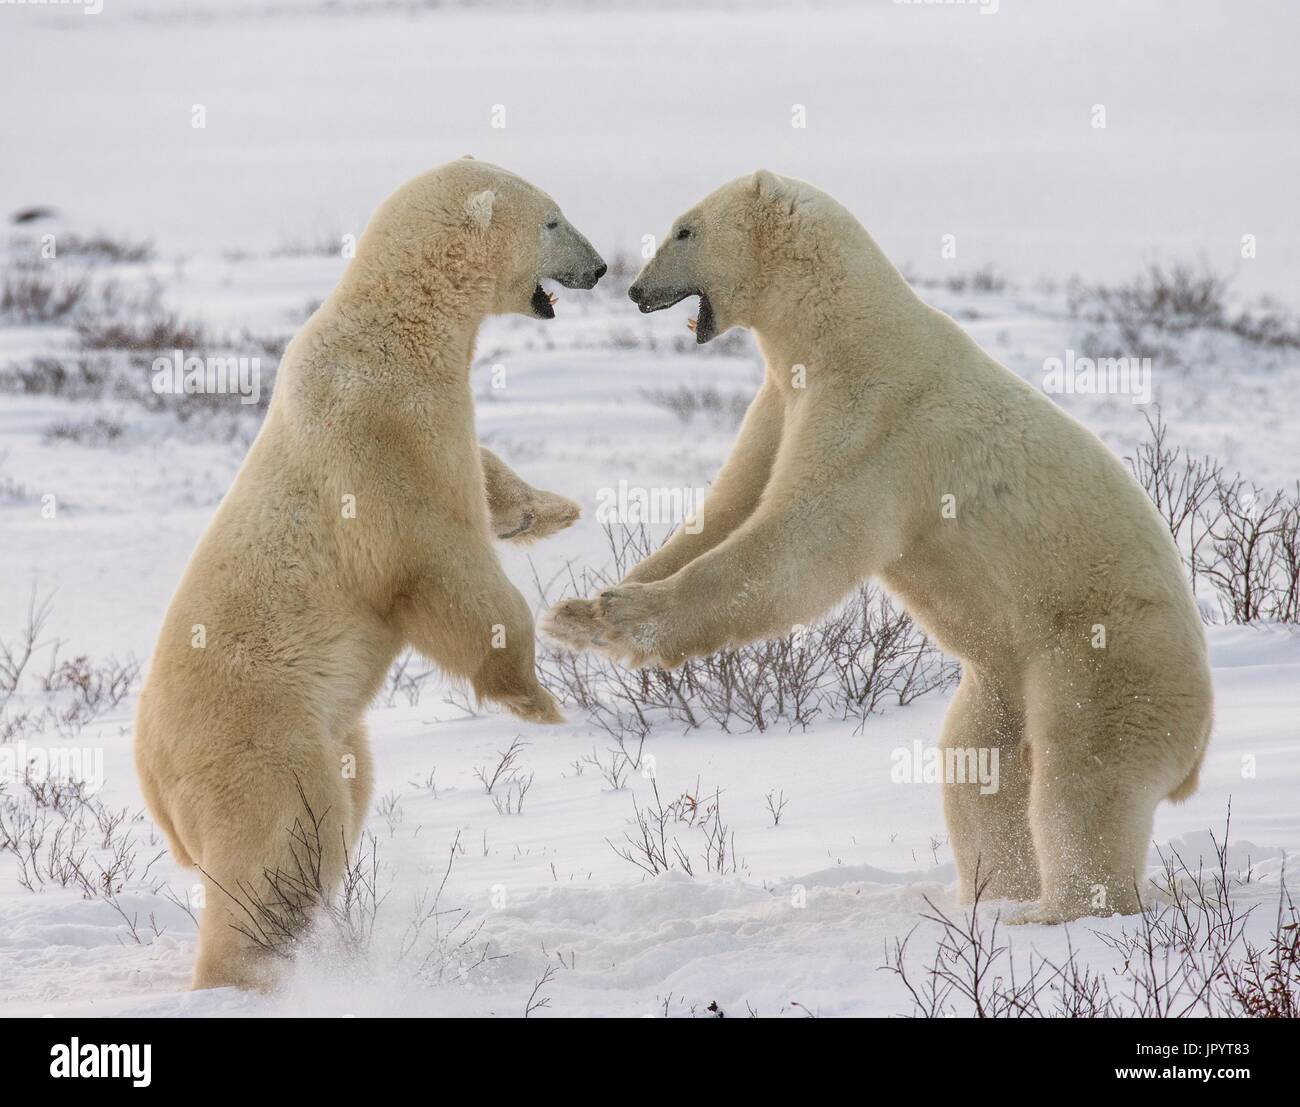 Two polar bears playing with each other in the tundra. Canada. - Stock Image